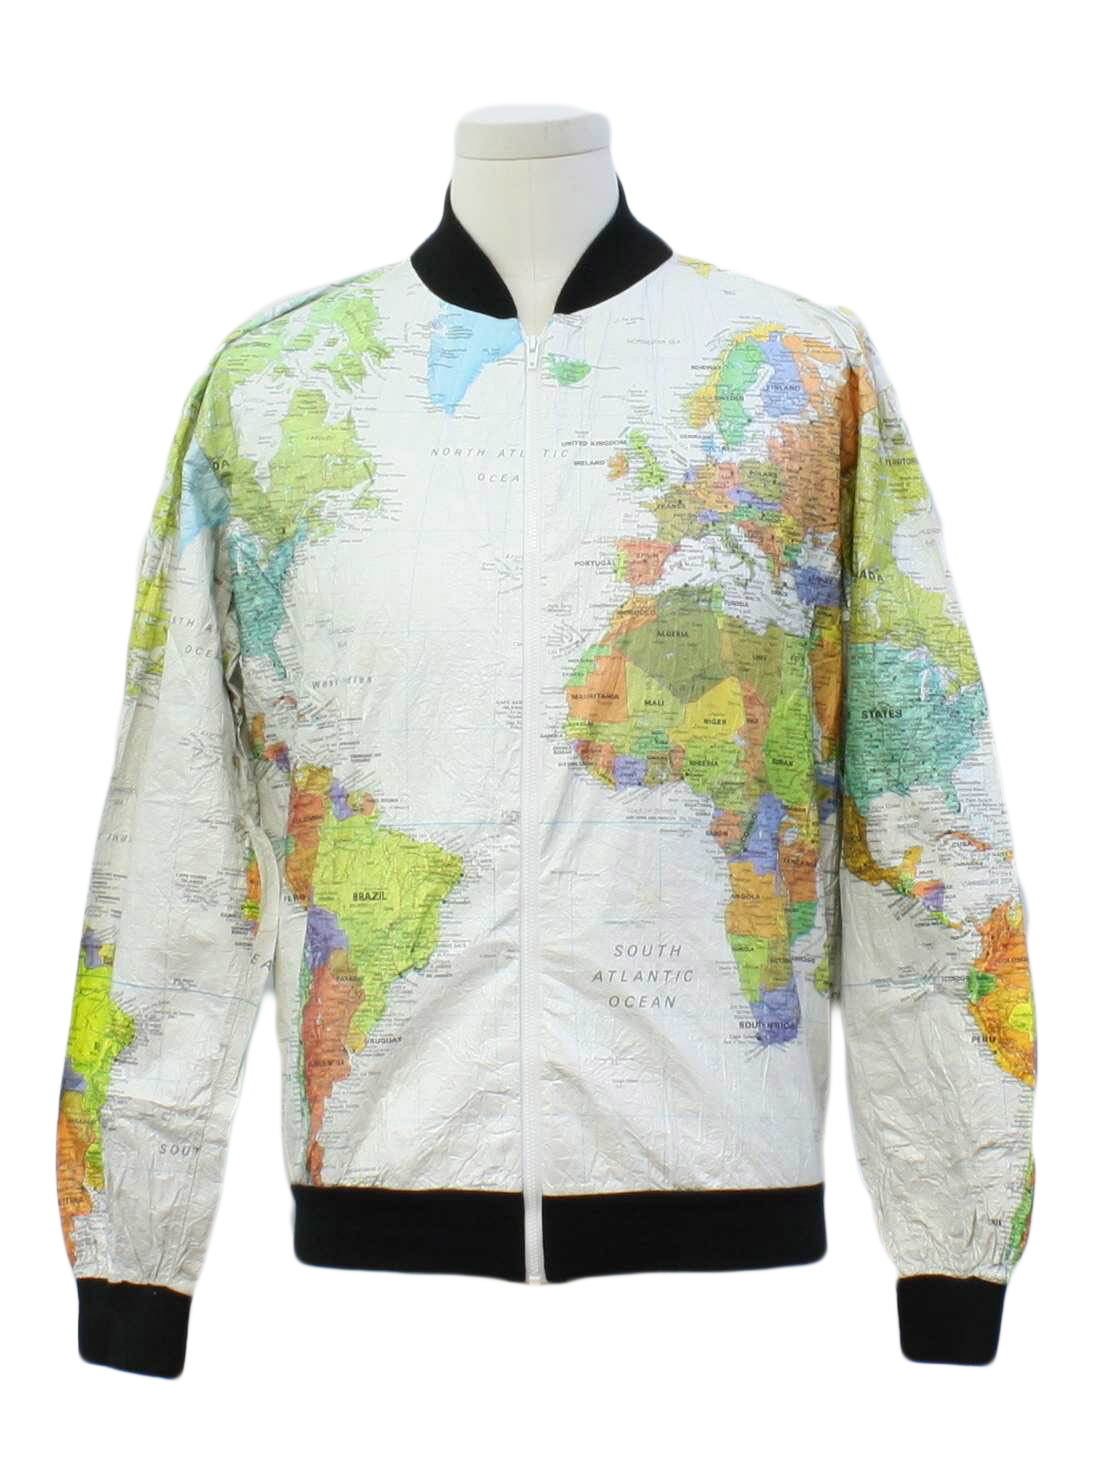 1980s jacket wearin the world 80s wearin the world mens white 1980s jacket wearin the world 80s wearin the world mens white background made in the usa world map print tyvek paper jacket with black rounded stand gumiabroncs Gallery